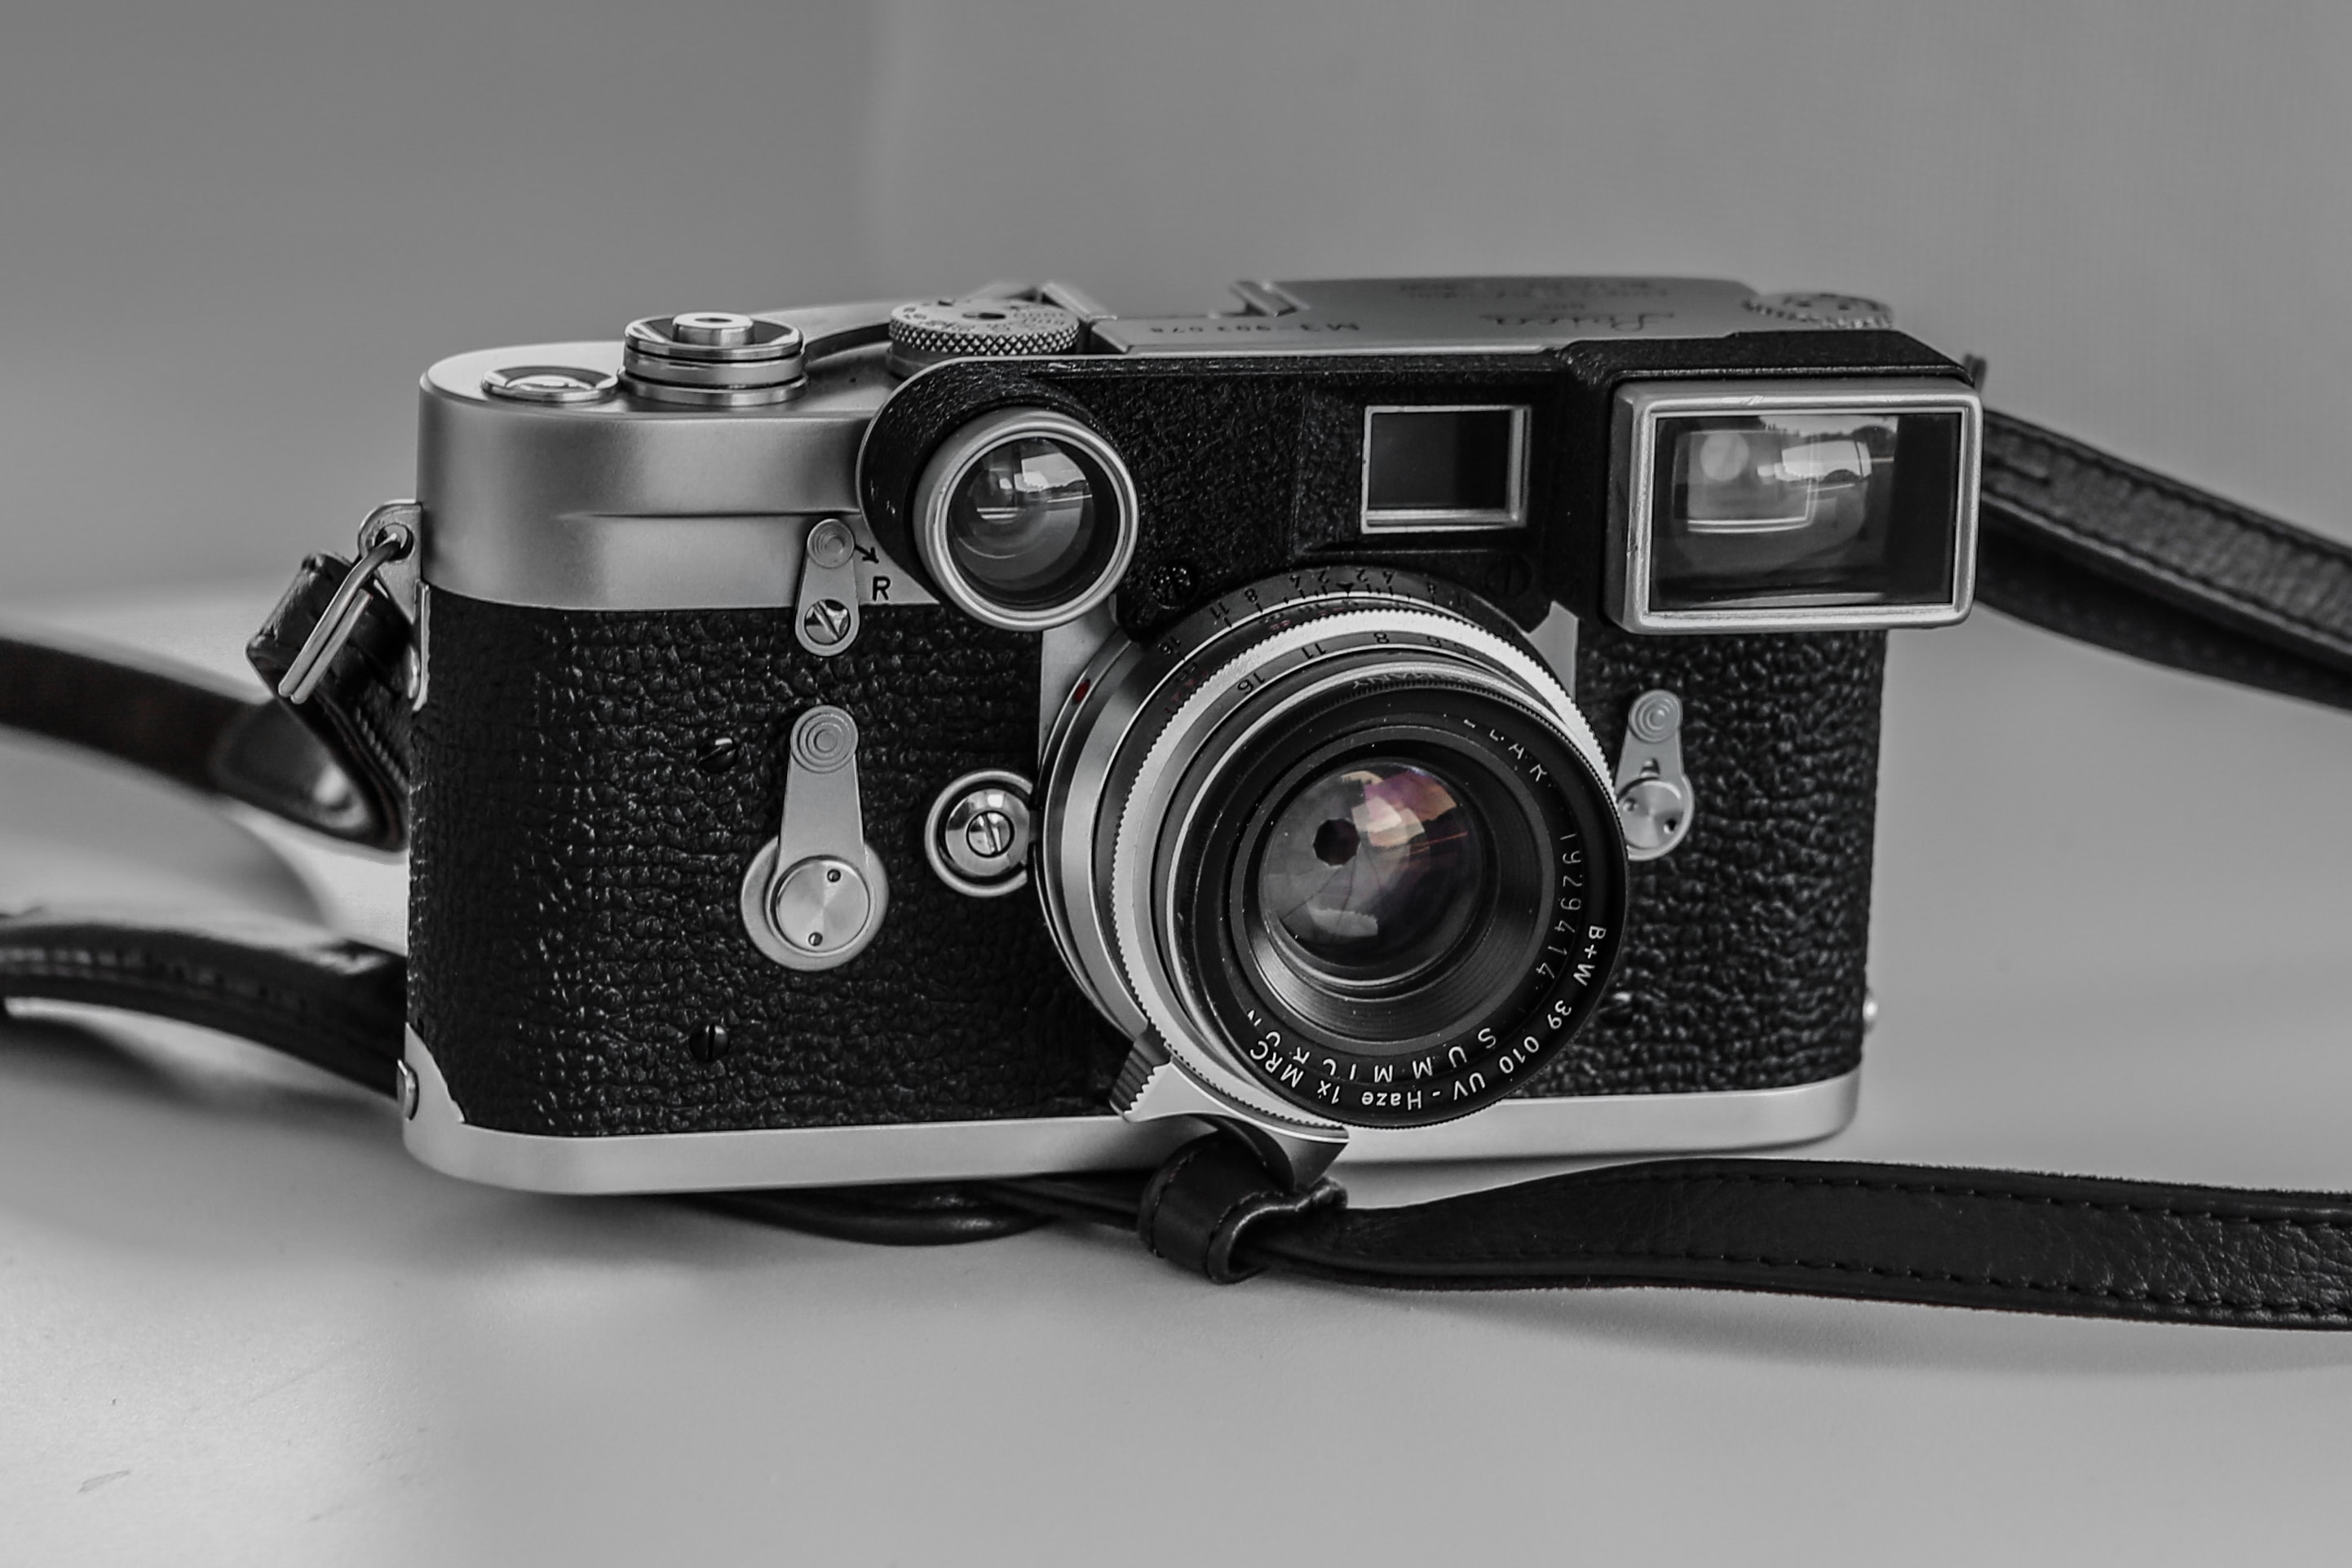 Vintage camera with leather black strap on a white surface